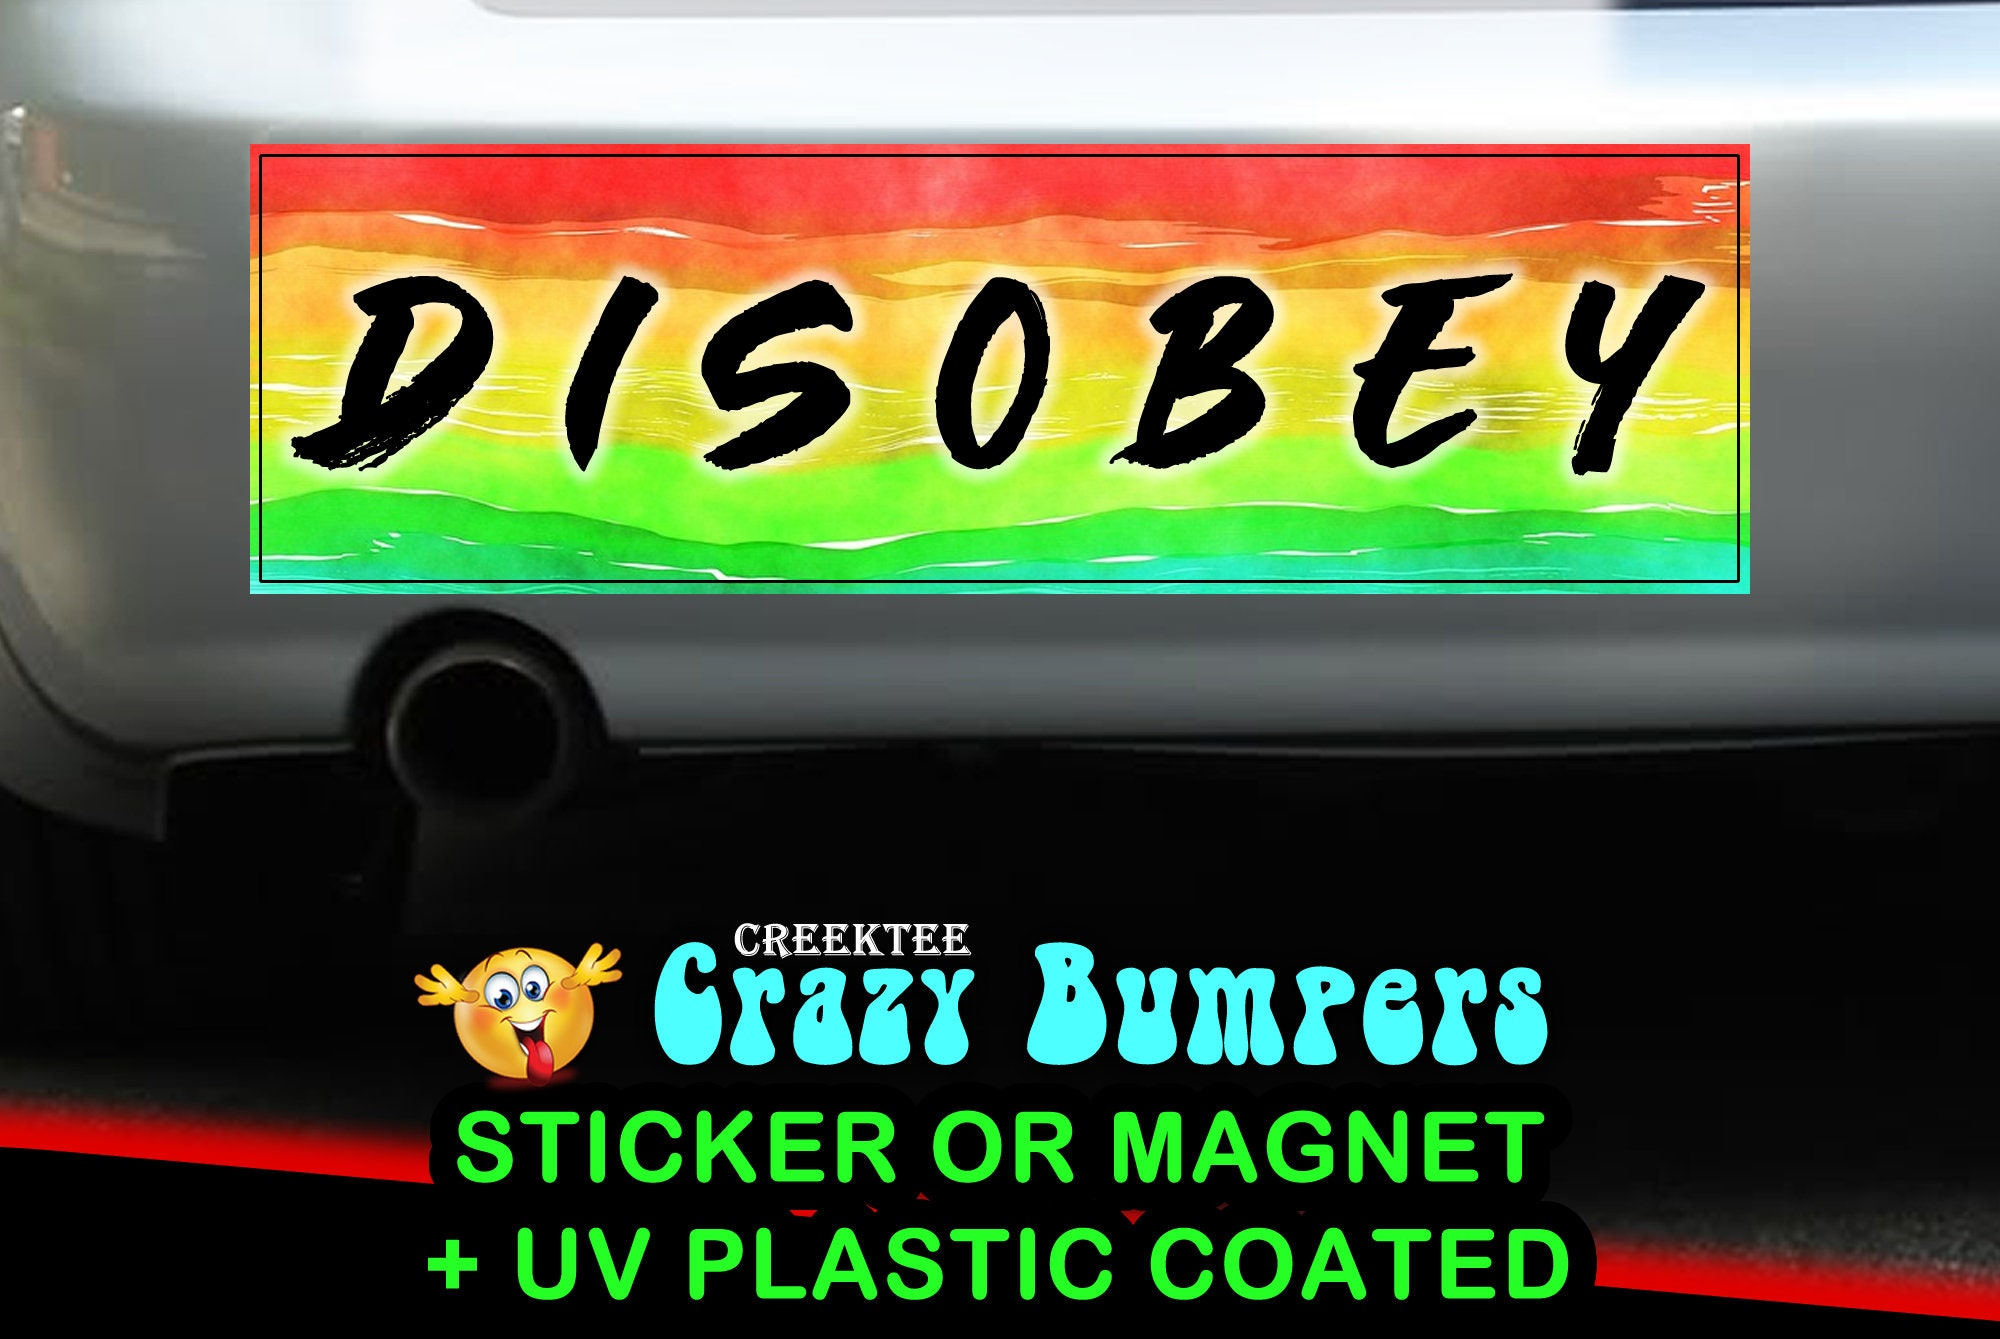 CAD$7.99 - Disobey 10 x 3 Bumper Sticker or Magnetic Bumper Sticker Available